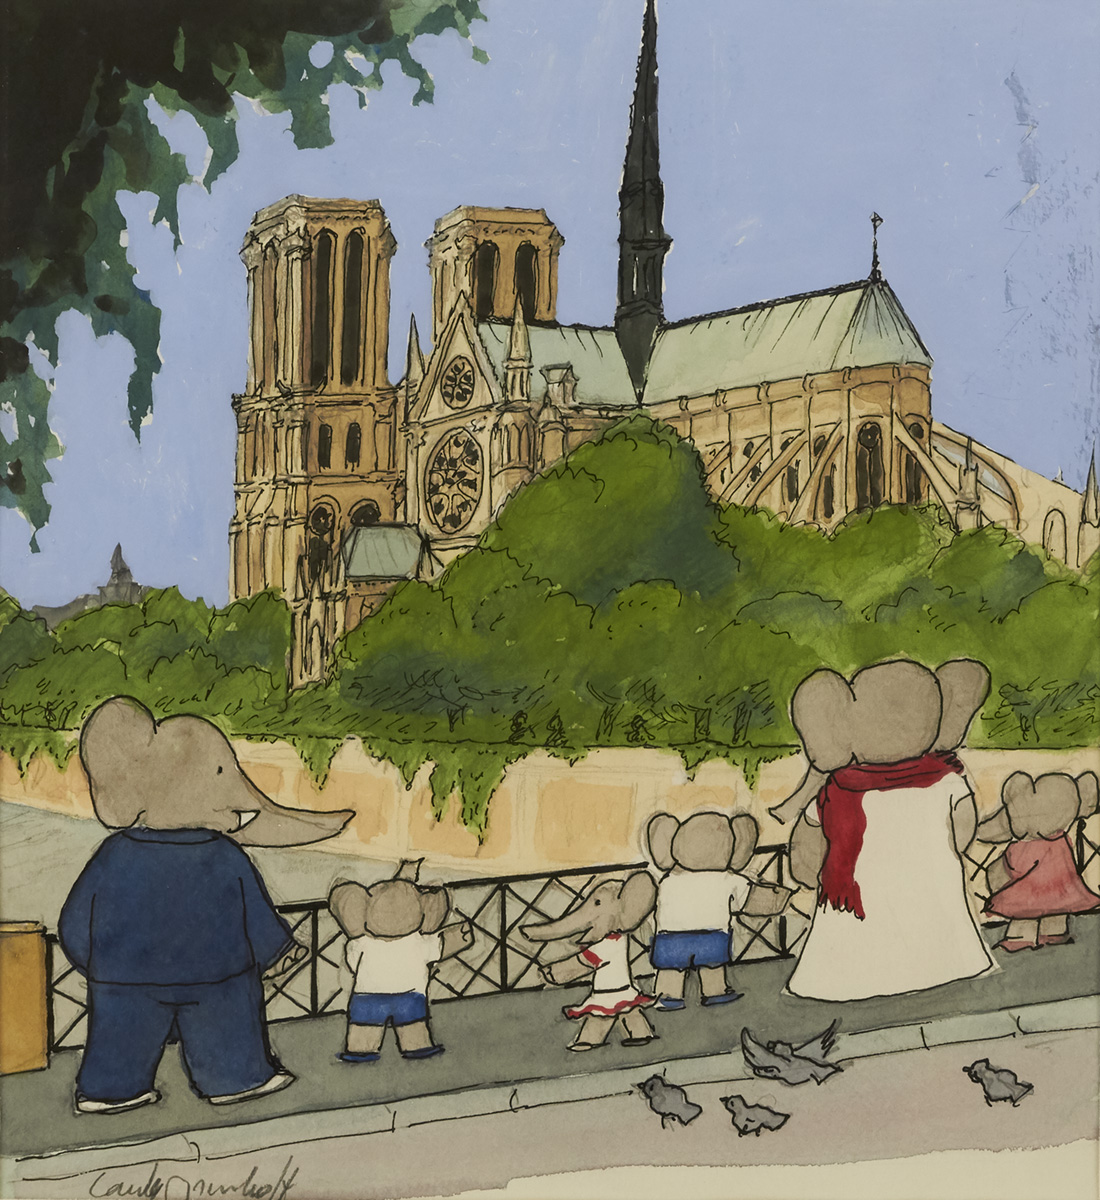 LAURENT DE BRUNHOFF. Babar took them to see the Cathedral of Notre Dame. [CHILDRENS / ELEPHANTS / FRANCE]